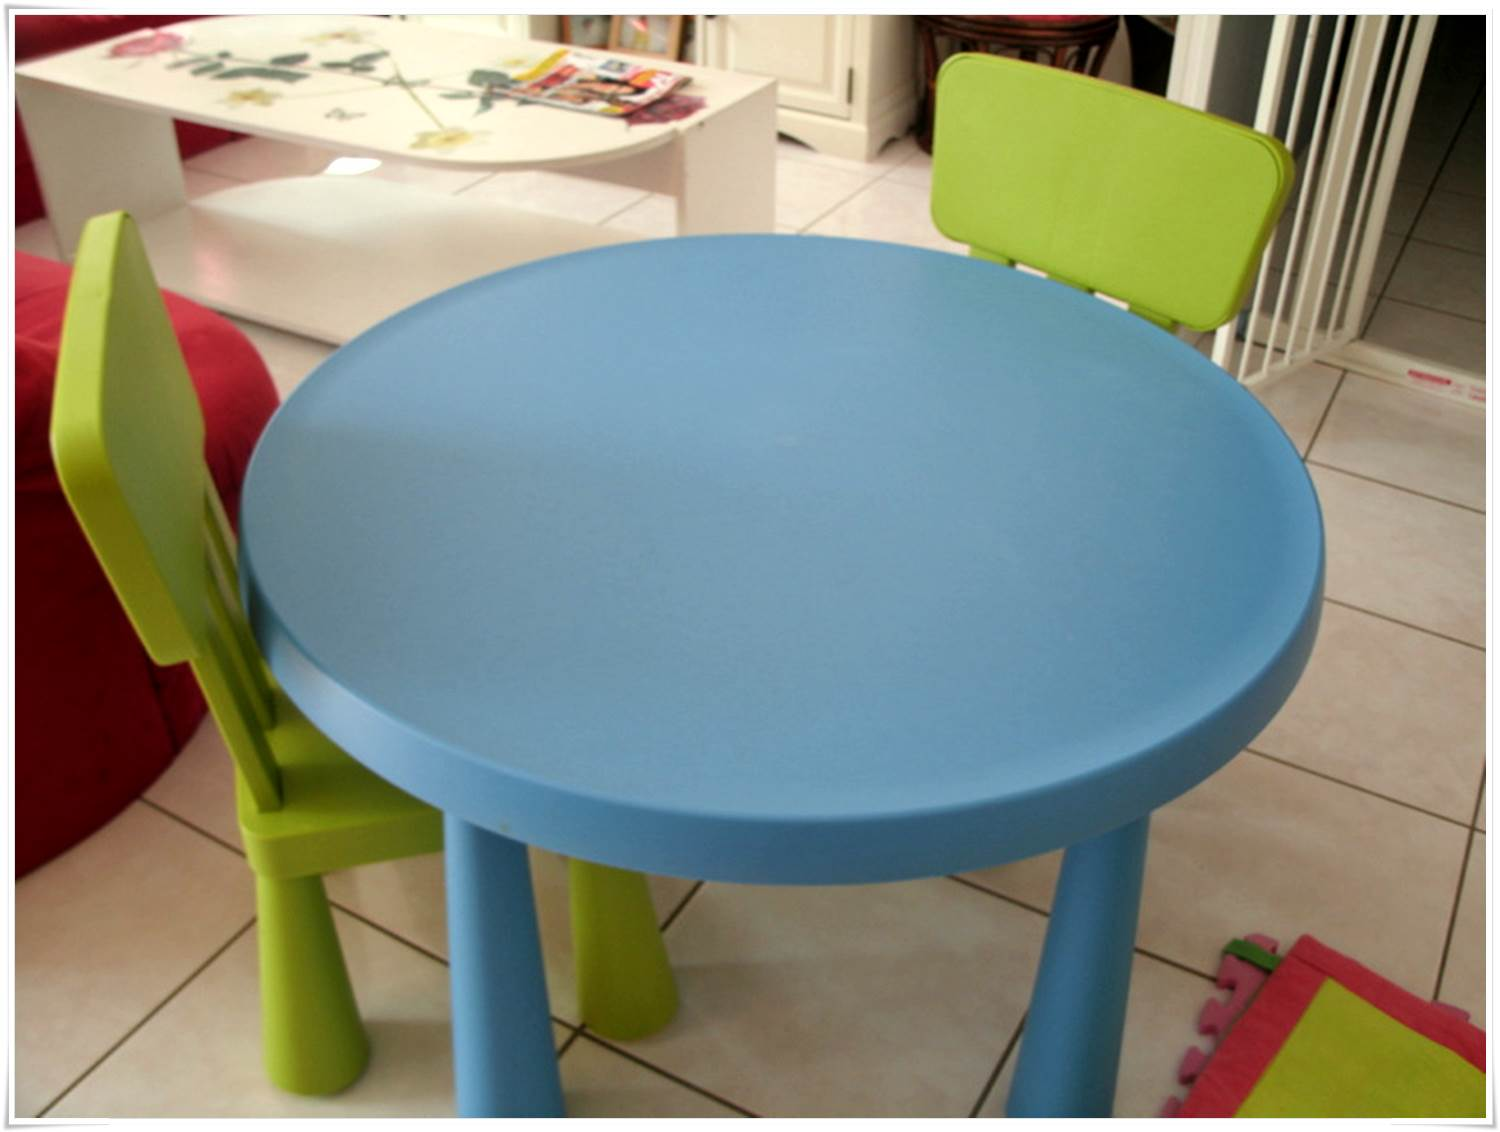 Table et chaise ikea enfant pi ti li - Table chaise enfant ikea ...